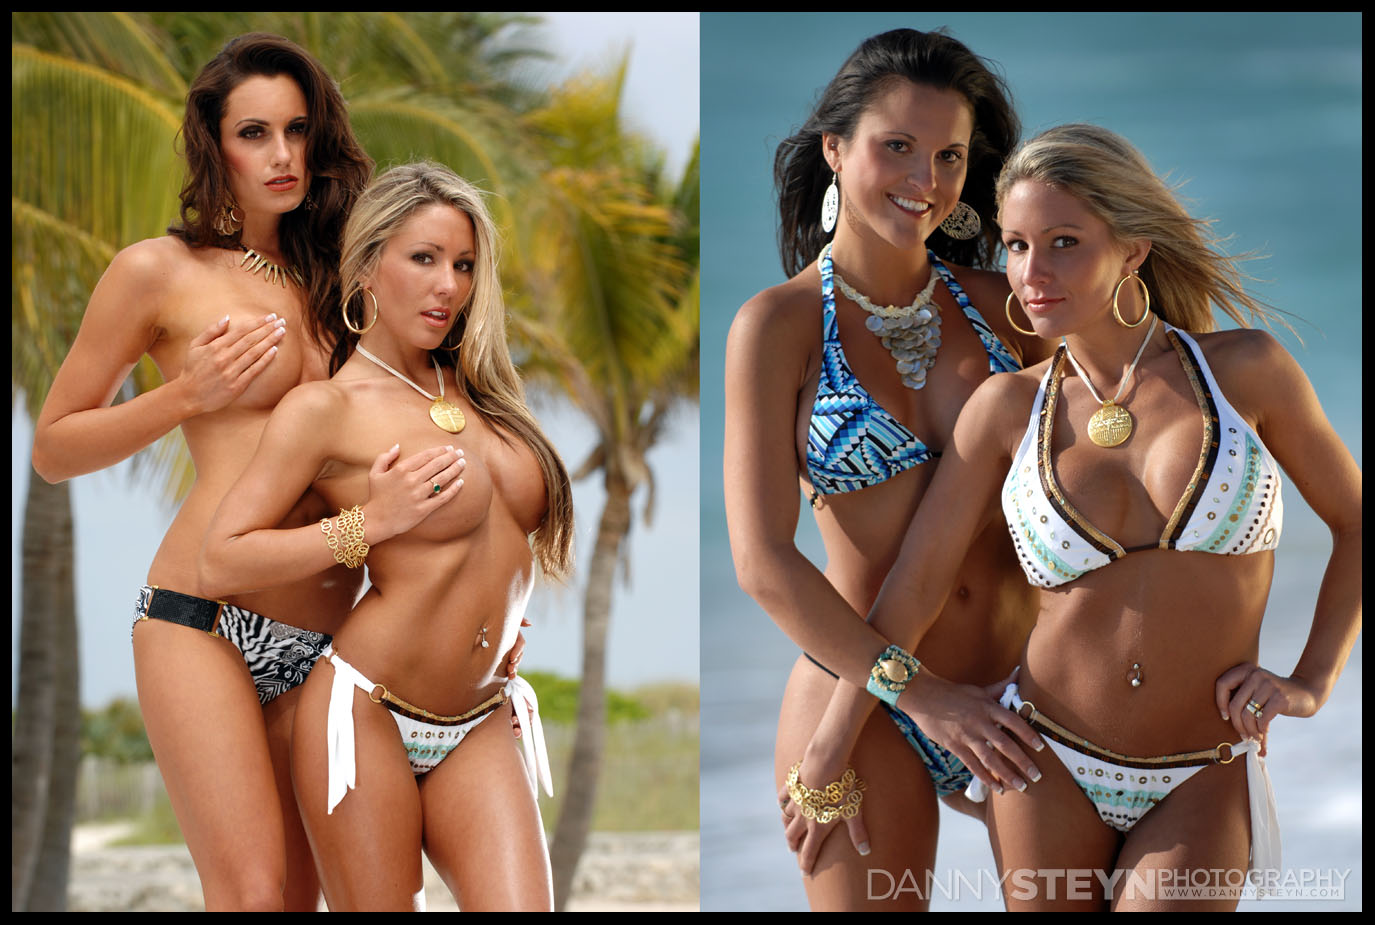 Calendar Photography - Behind the Scenes